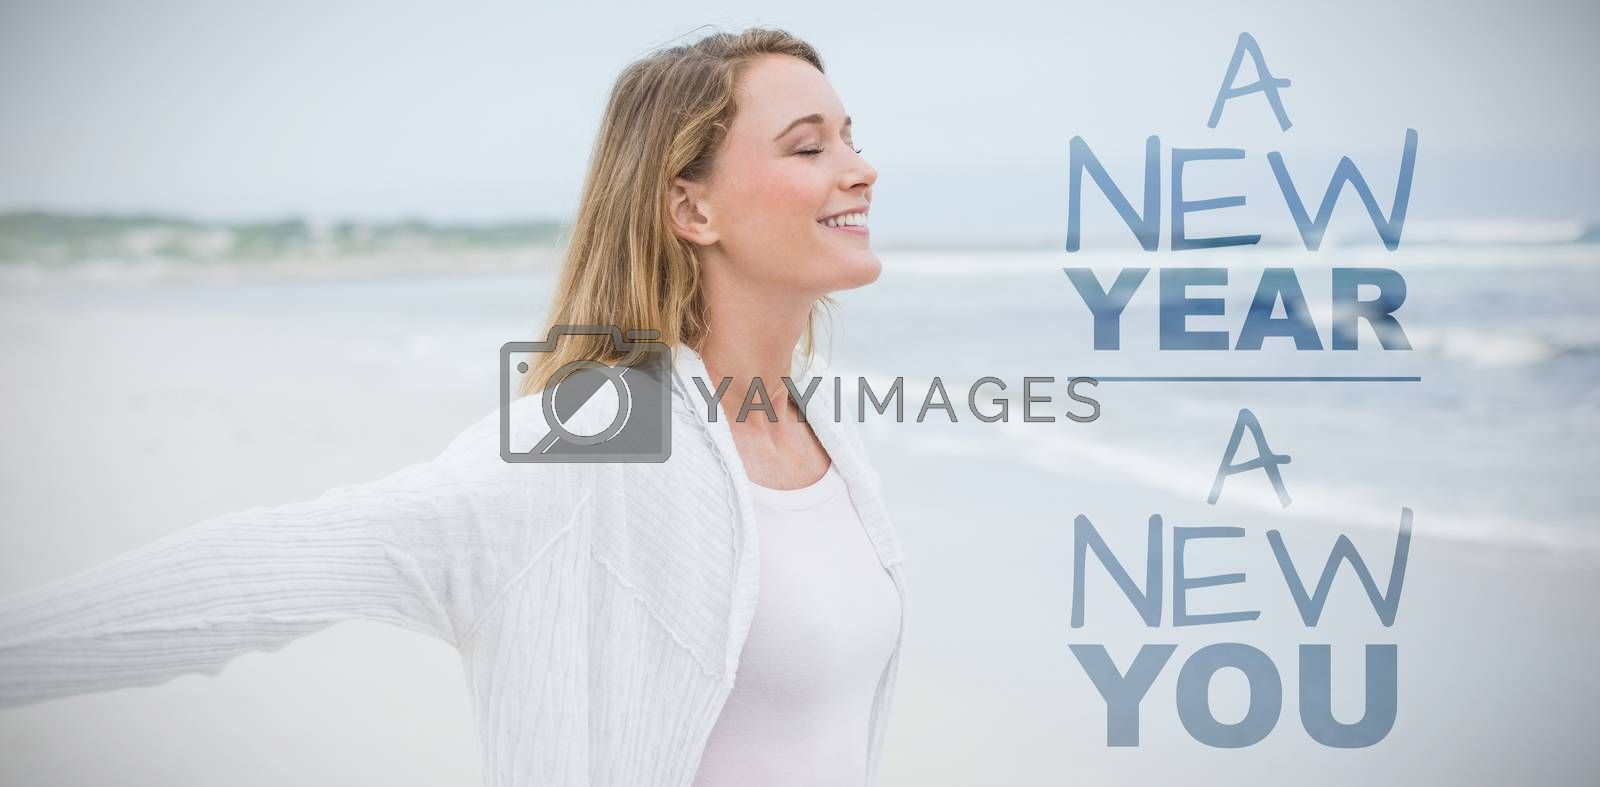 New year new you against casual young woman with eyes closed at beach